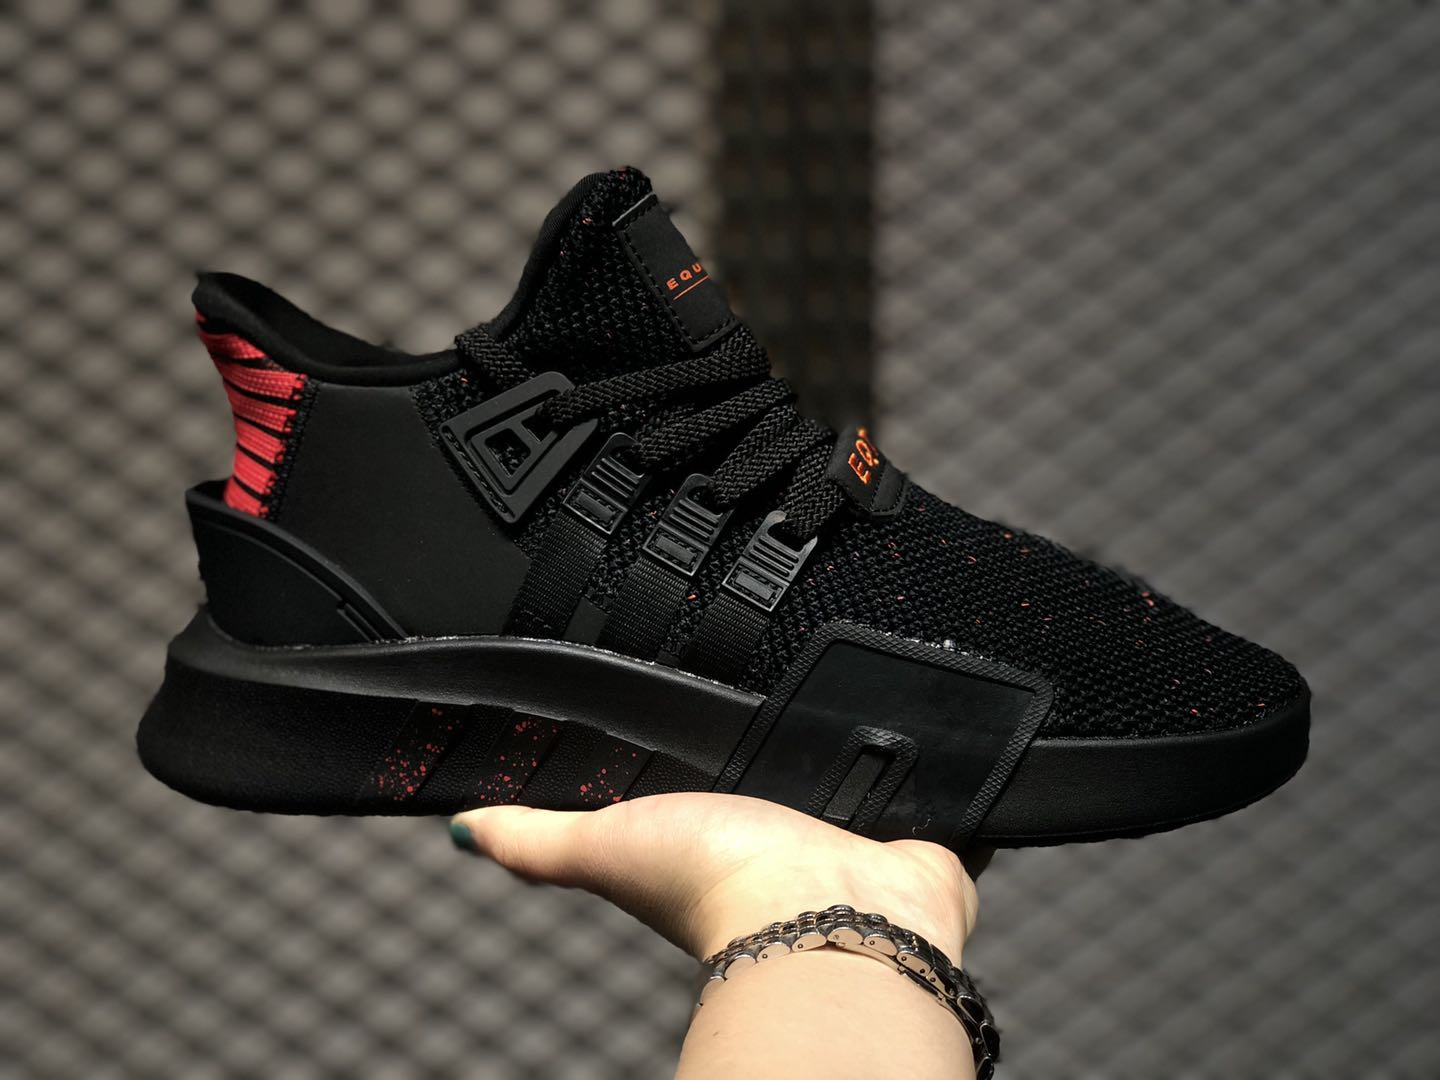 Adidas EQT Bask ADV Core Black/Hi-Res Red Sport Shoes On Sale EE5039